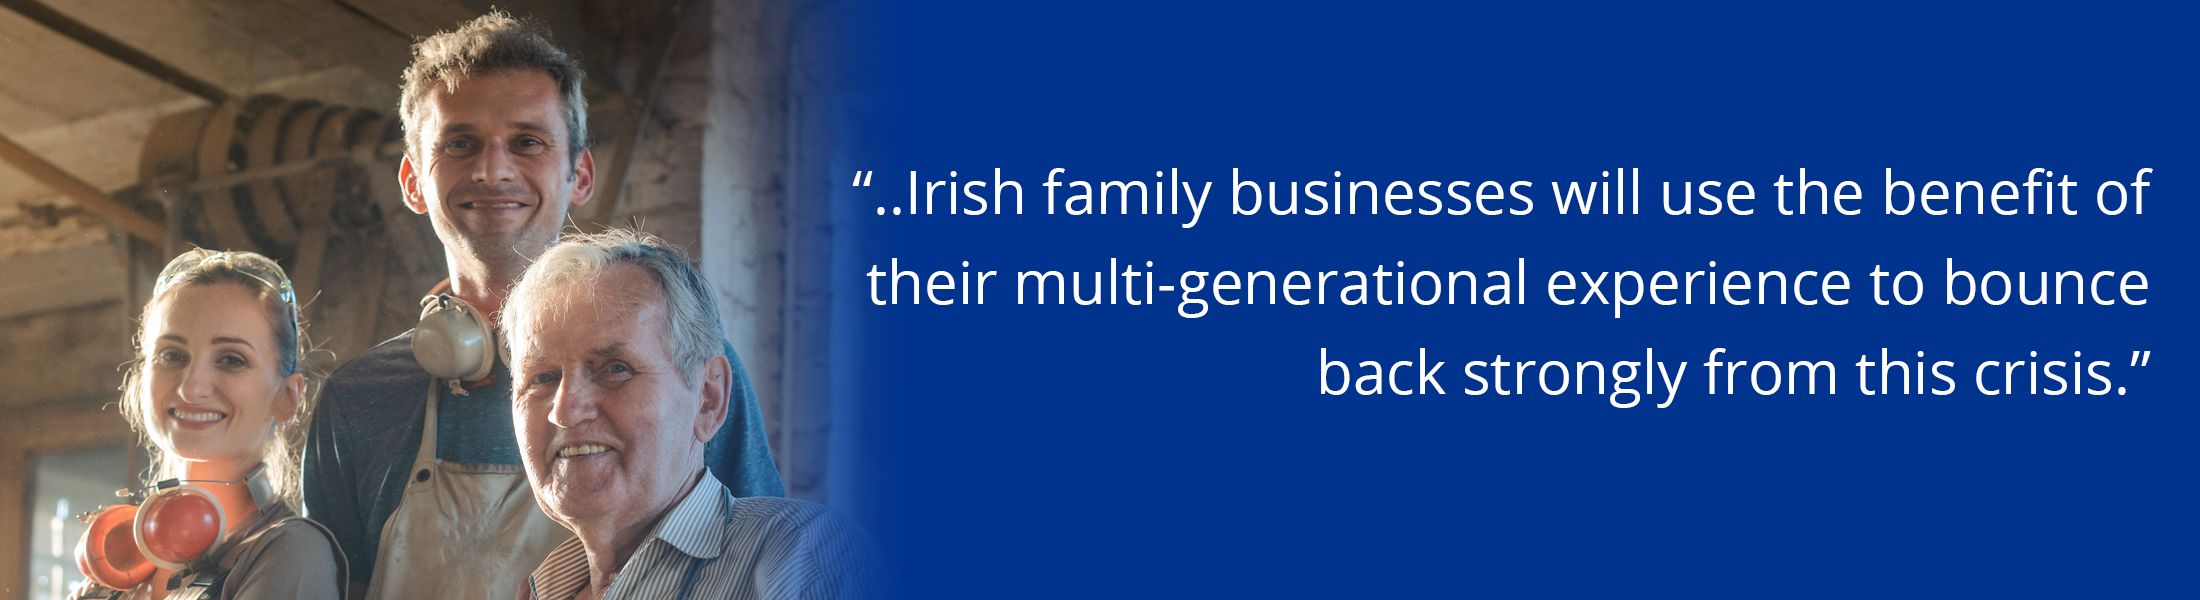 """Image of family business generations, with text overlaid, """"Irish family businesses will use the benefit of their multi-generational experience to bounce back strongly from this crisis"""""""